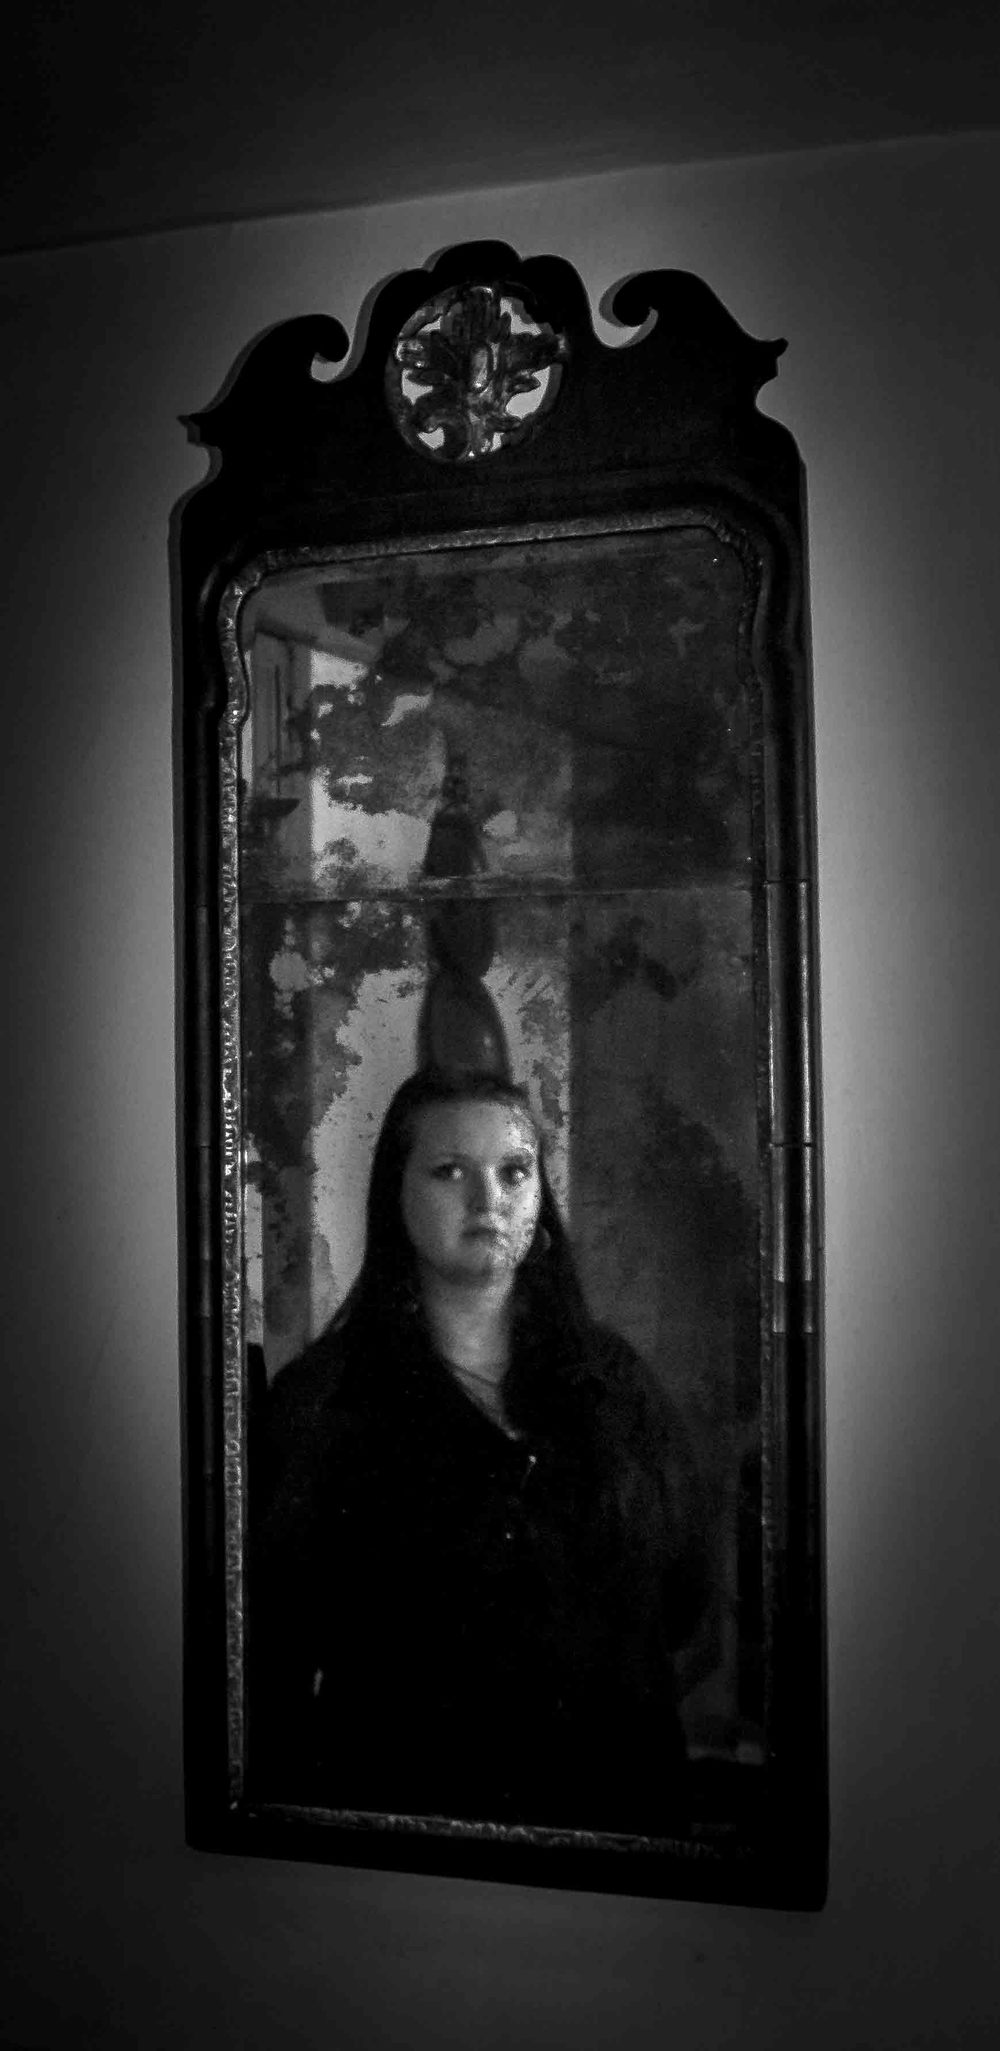 Investigator Christina In Mirror